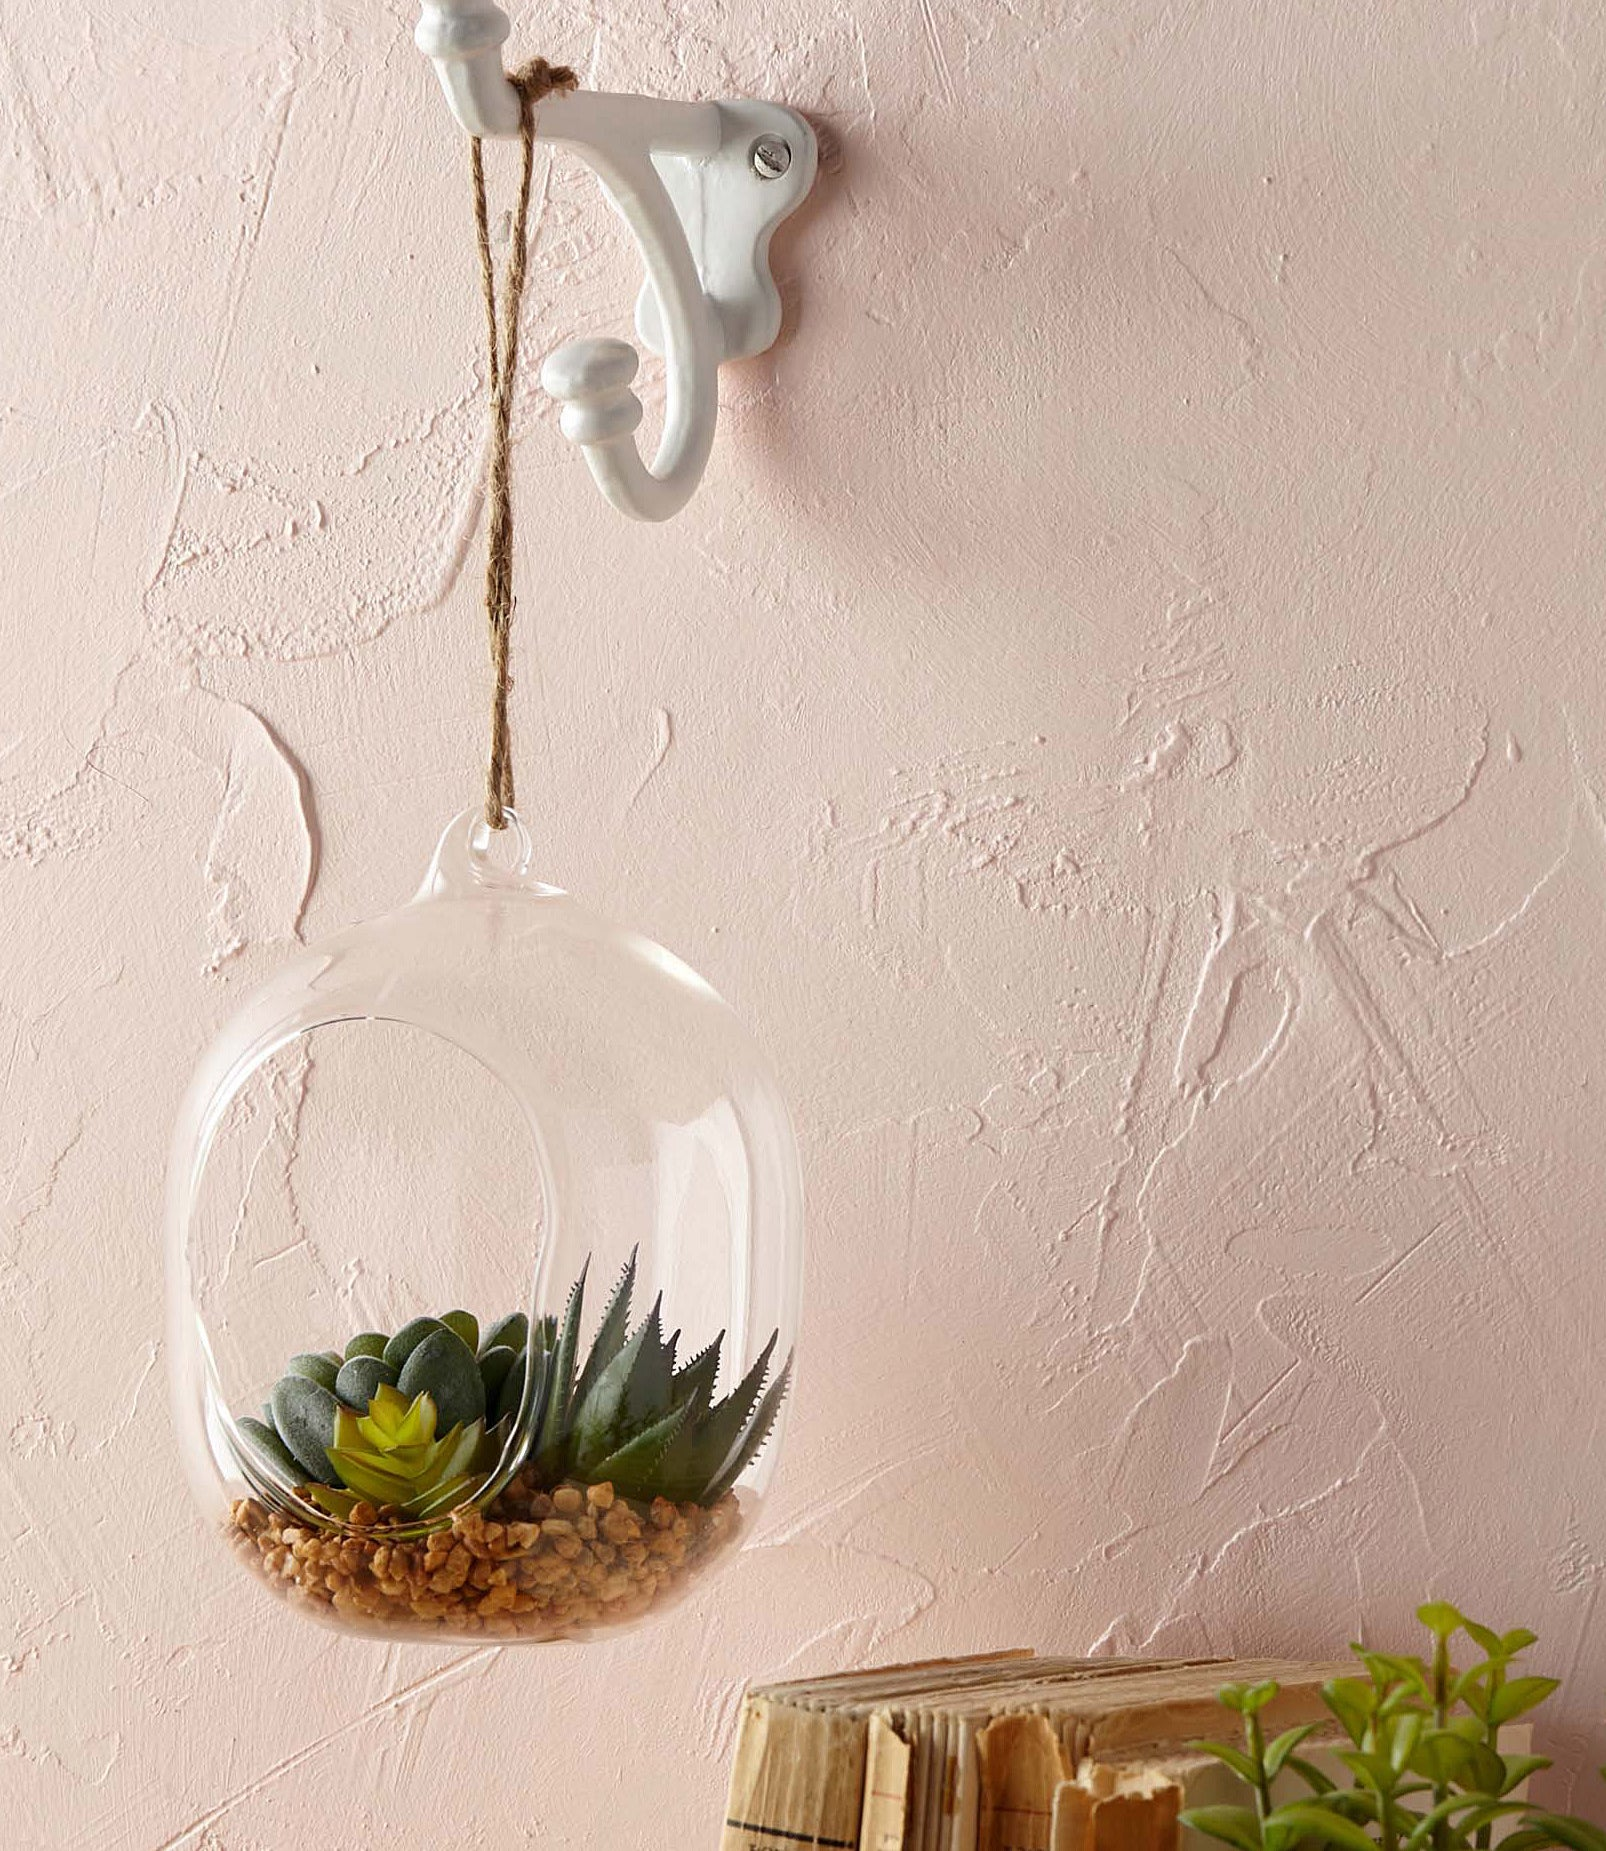 A glass terrarium hanging in front of a textured wall